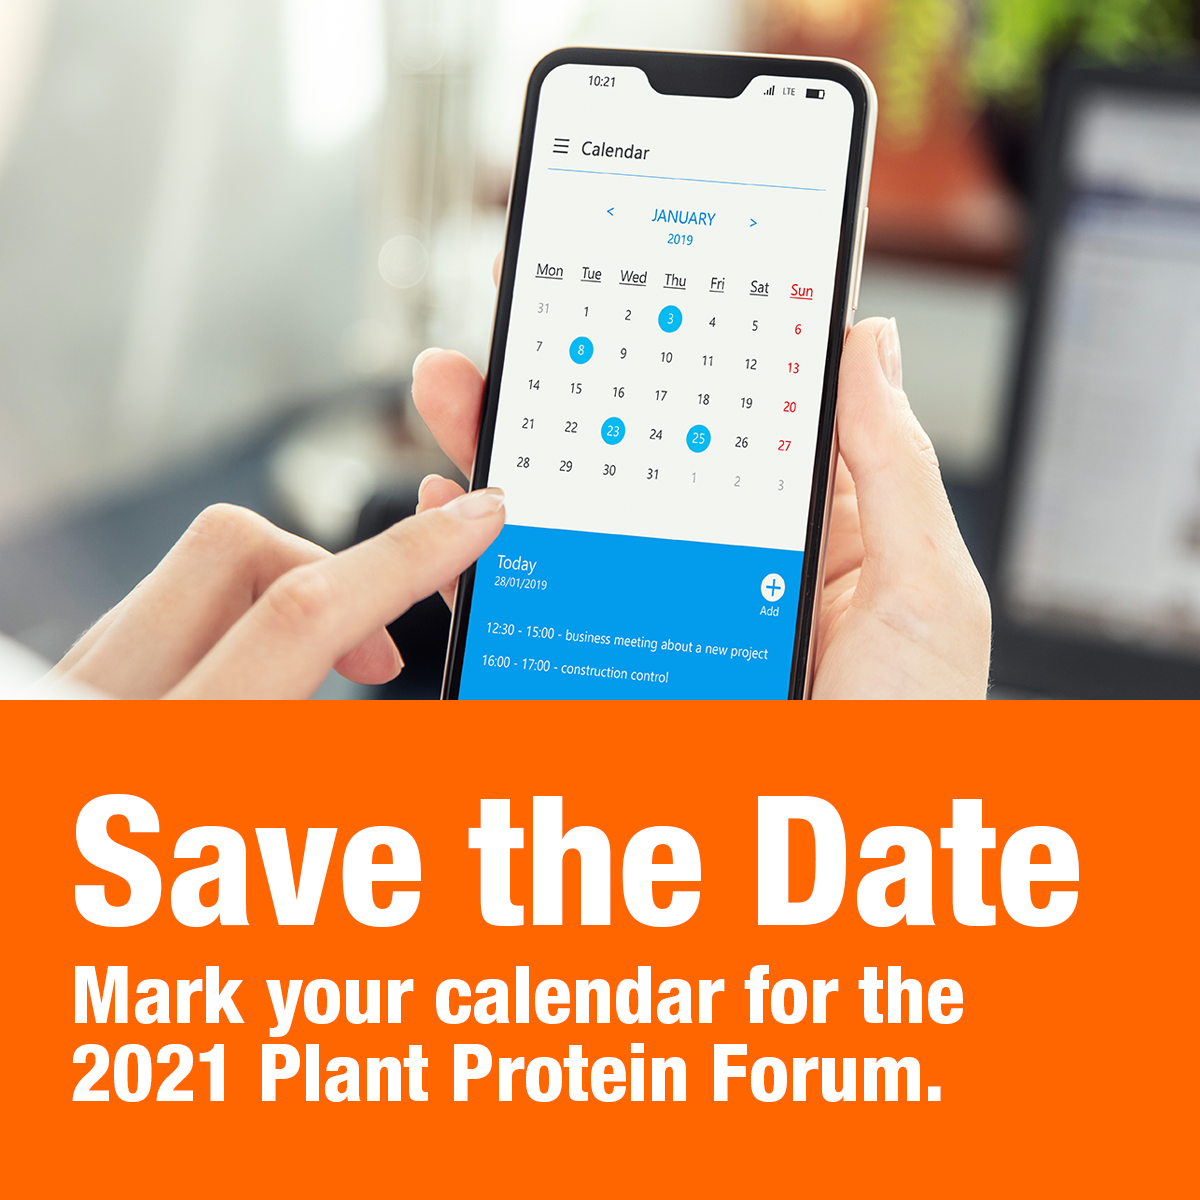 Save the date for the 2021 Plant Protein Forum